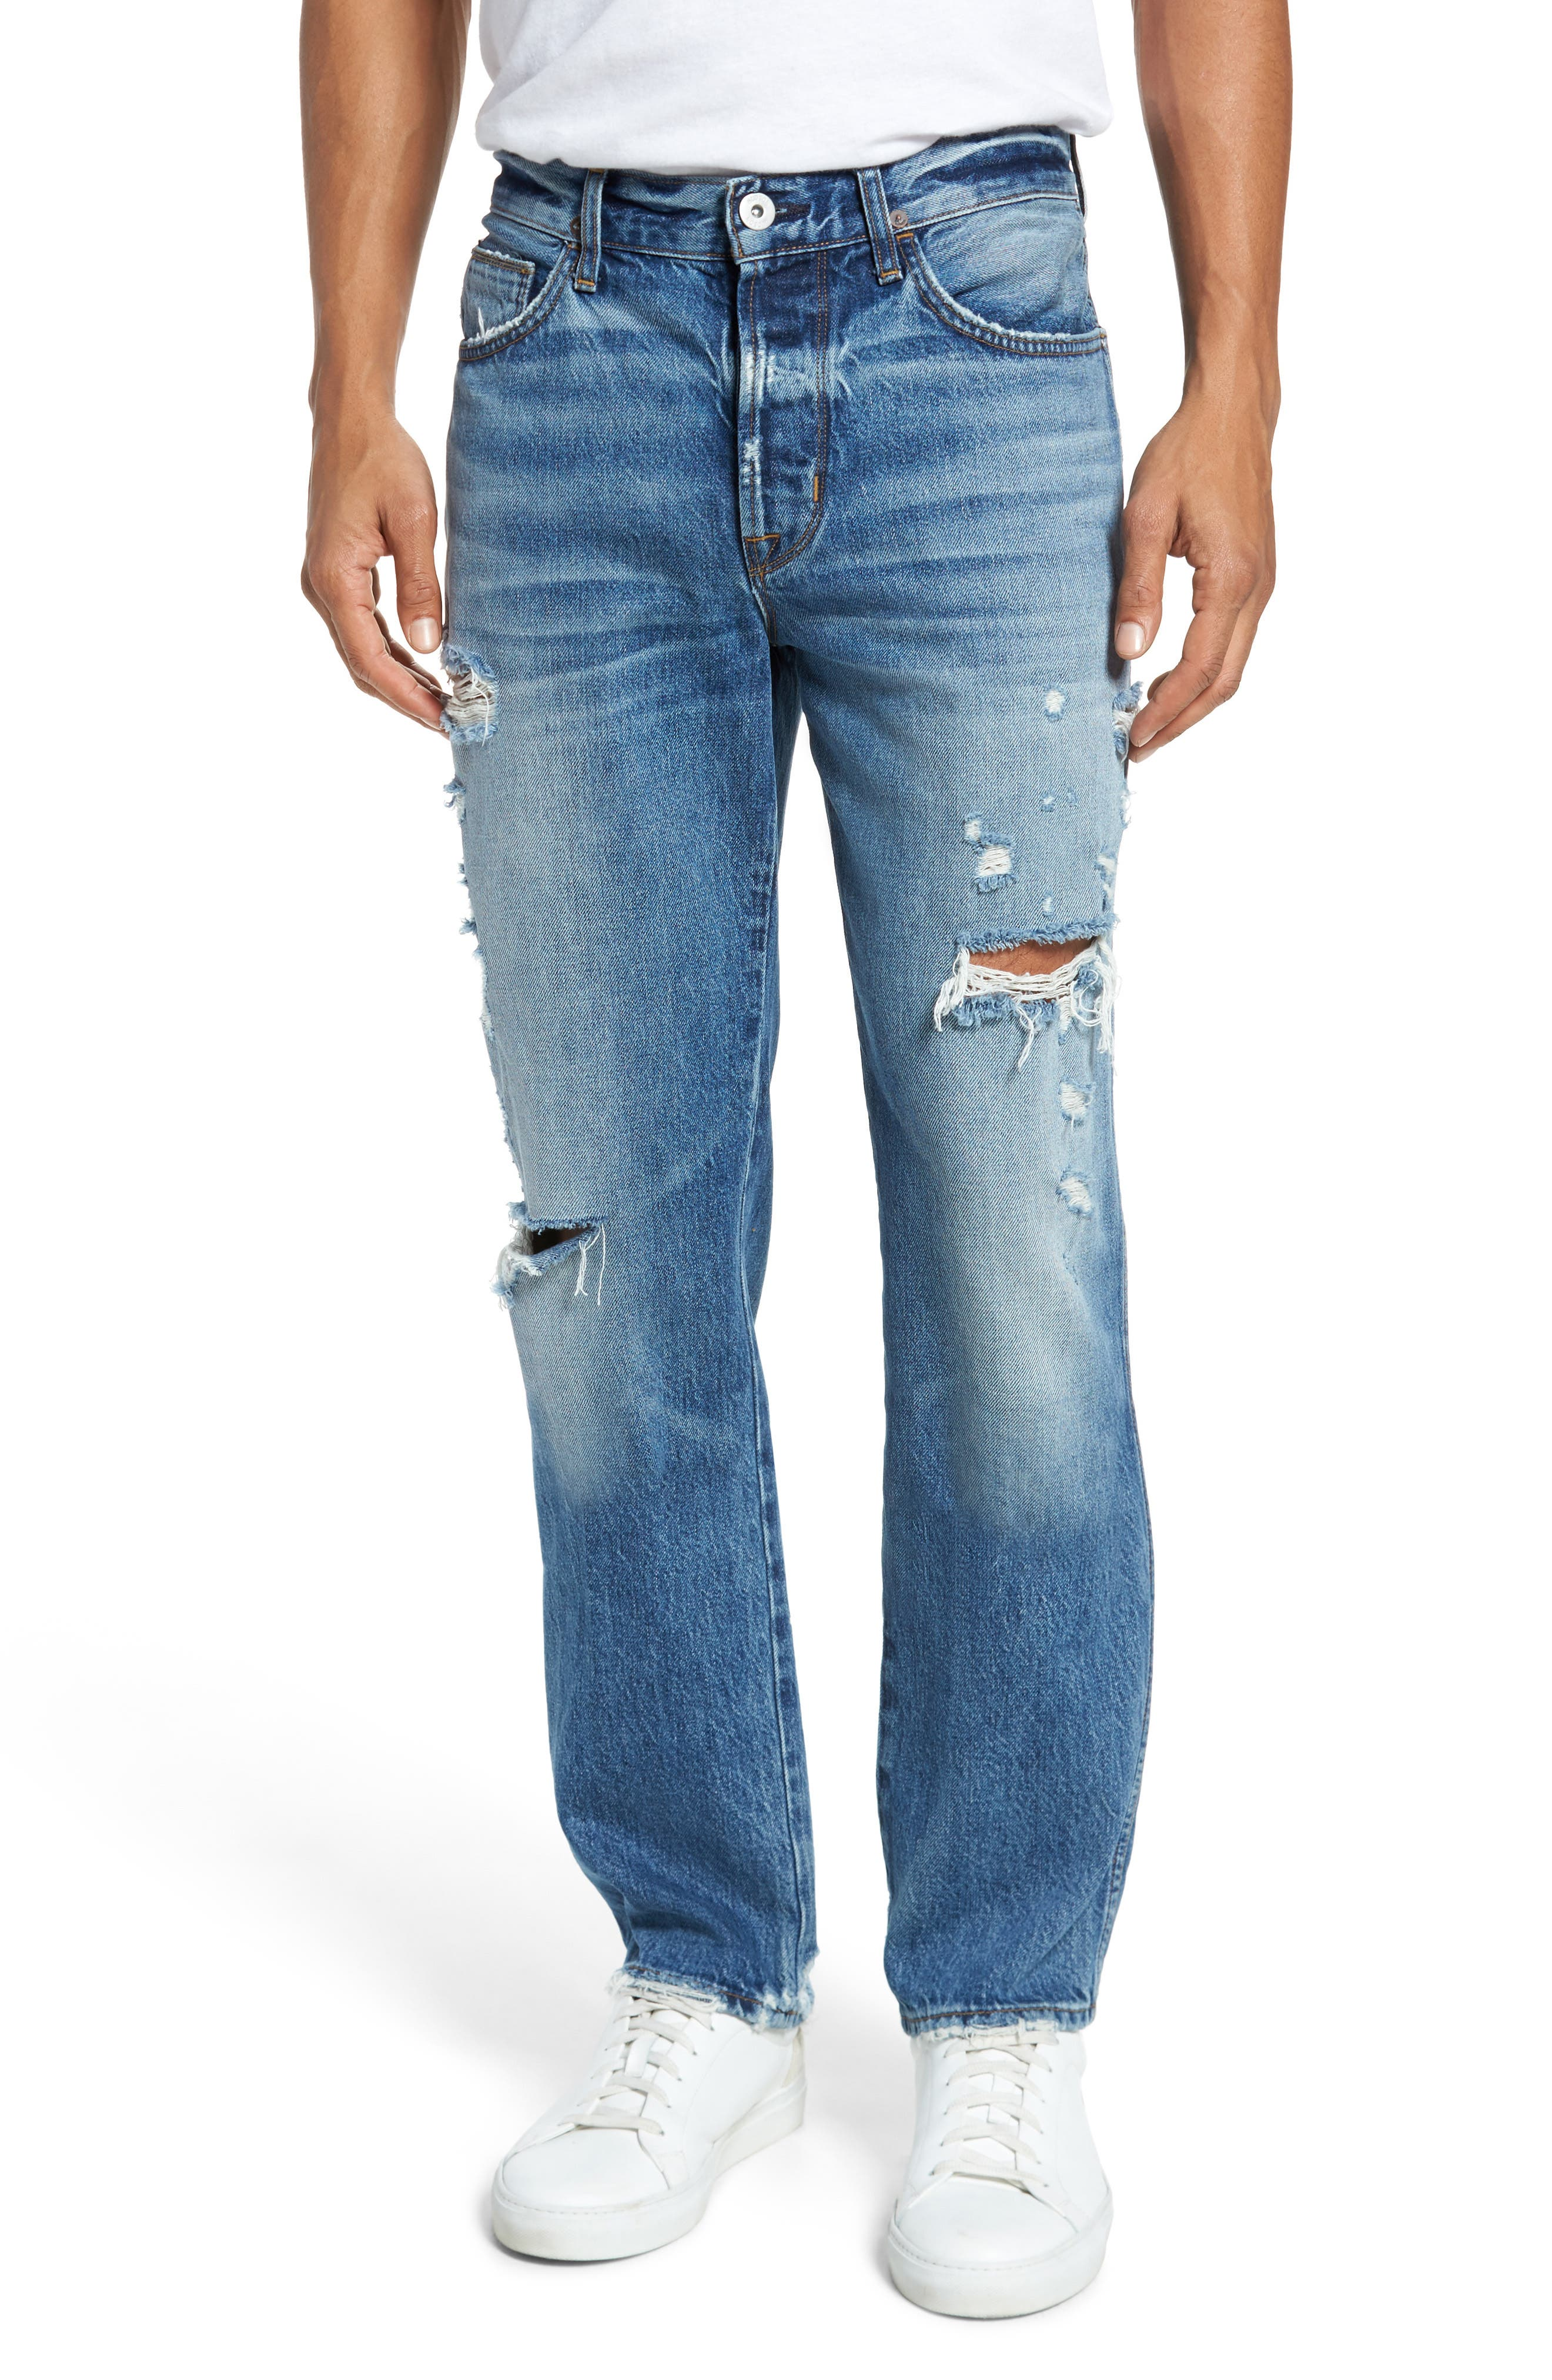 Alternate Image 1 Selected - Hudson Jeans Dixon Straight Fit Jeans (Landmark)